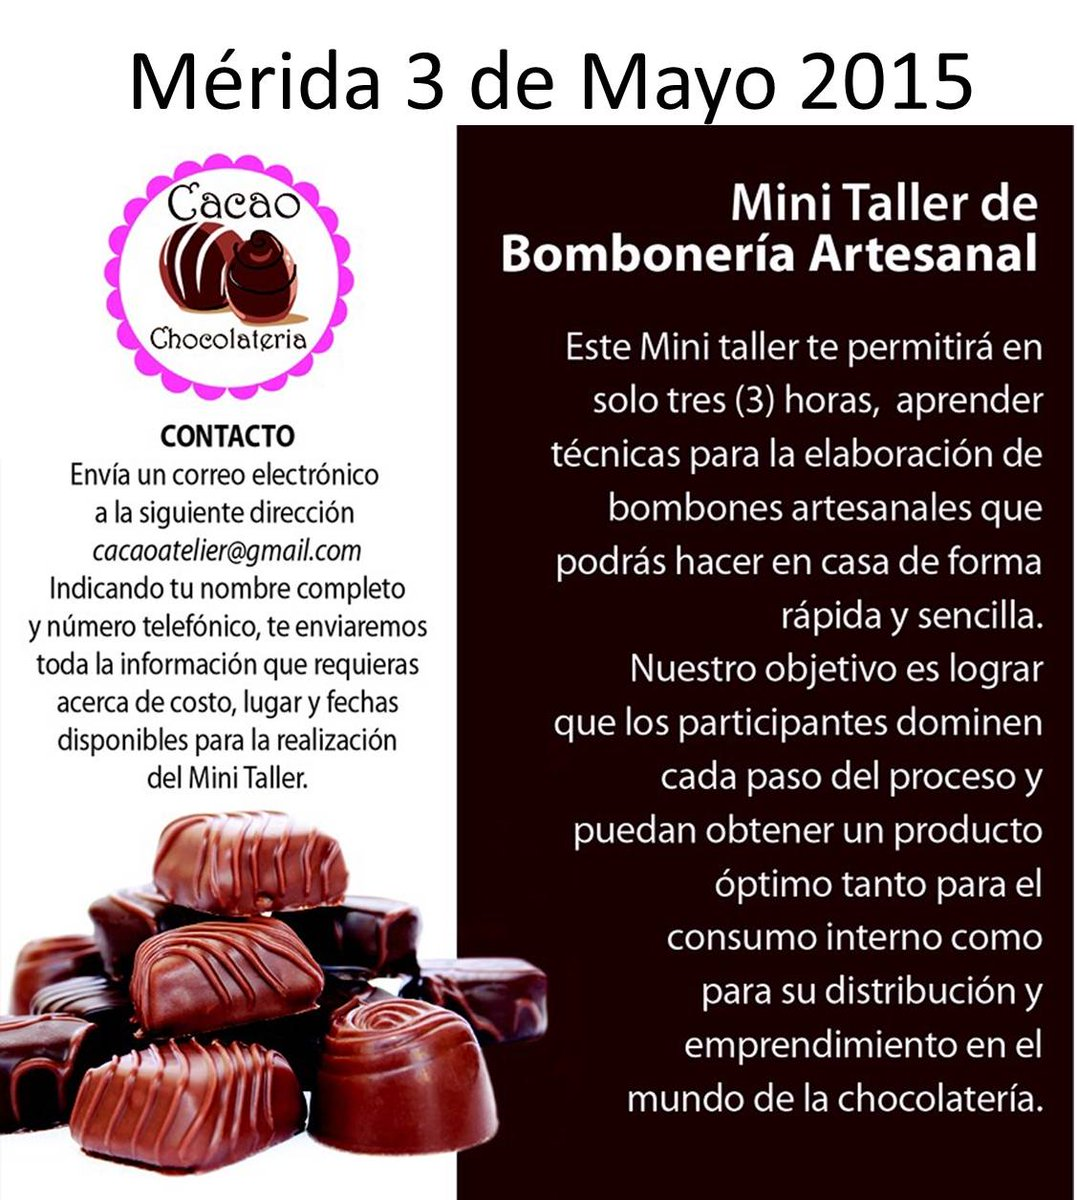 Cacao Chocolateria (@cacaoatelier) | Twitter